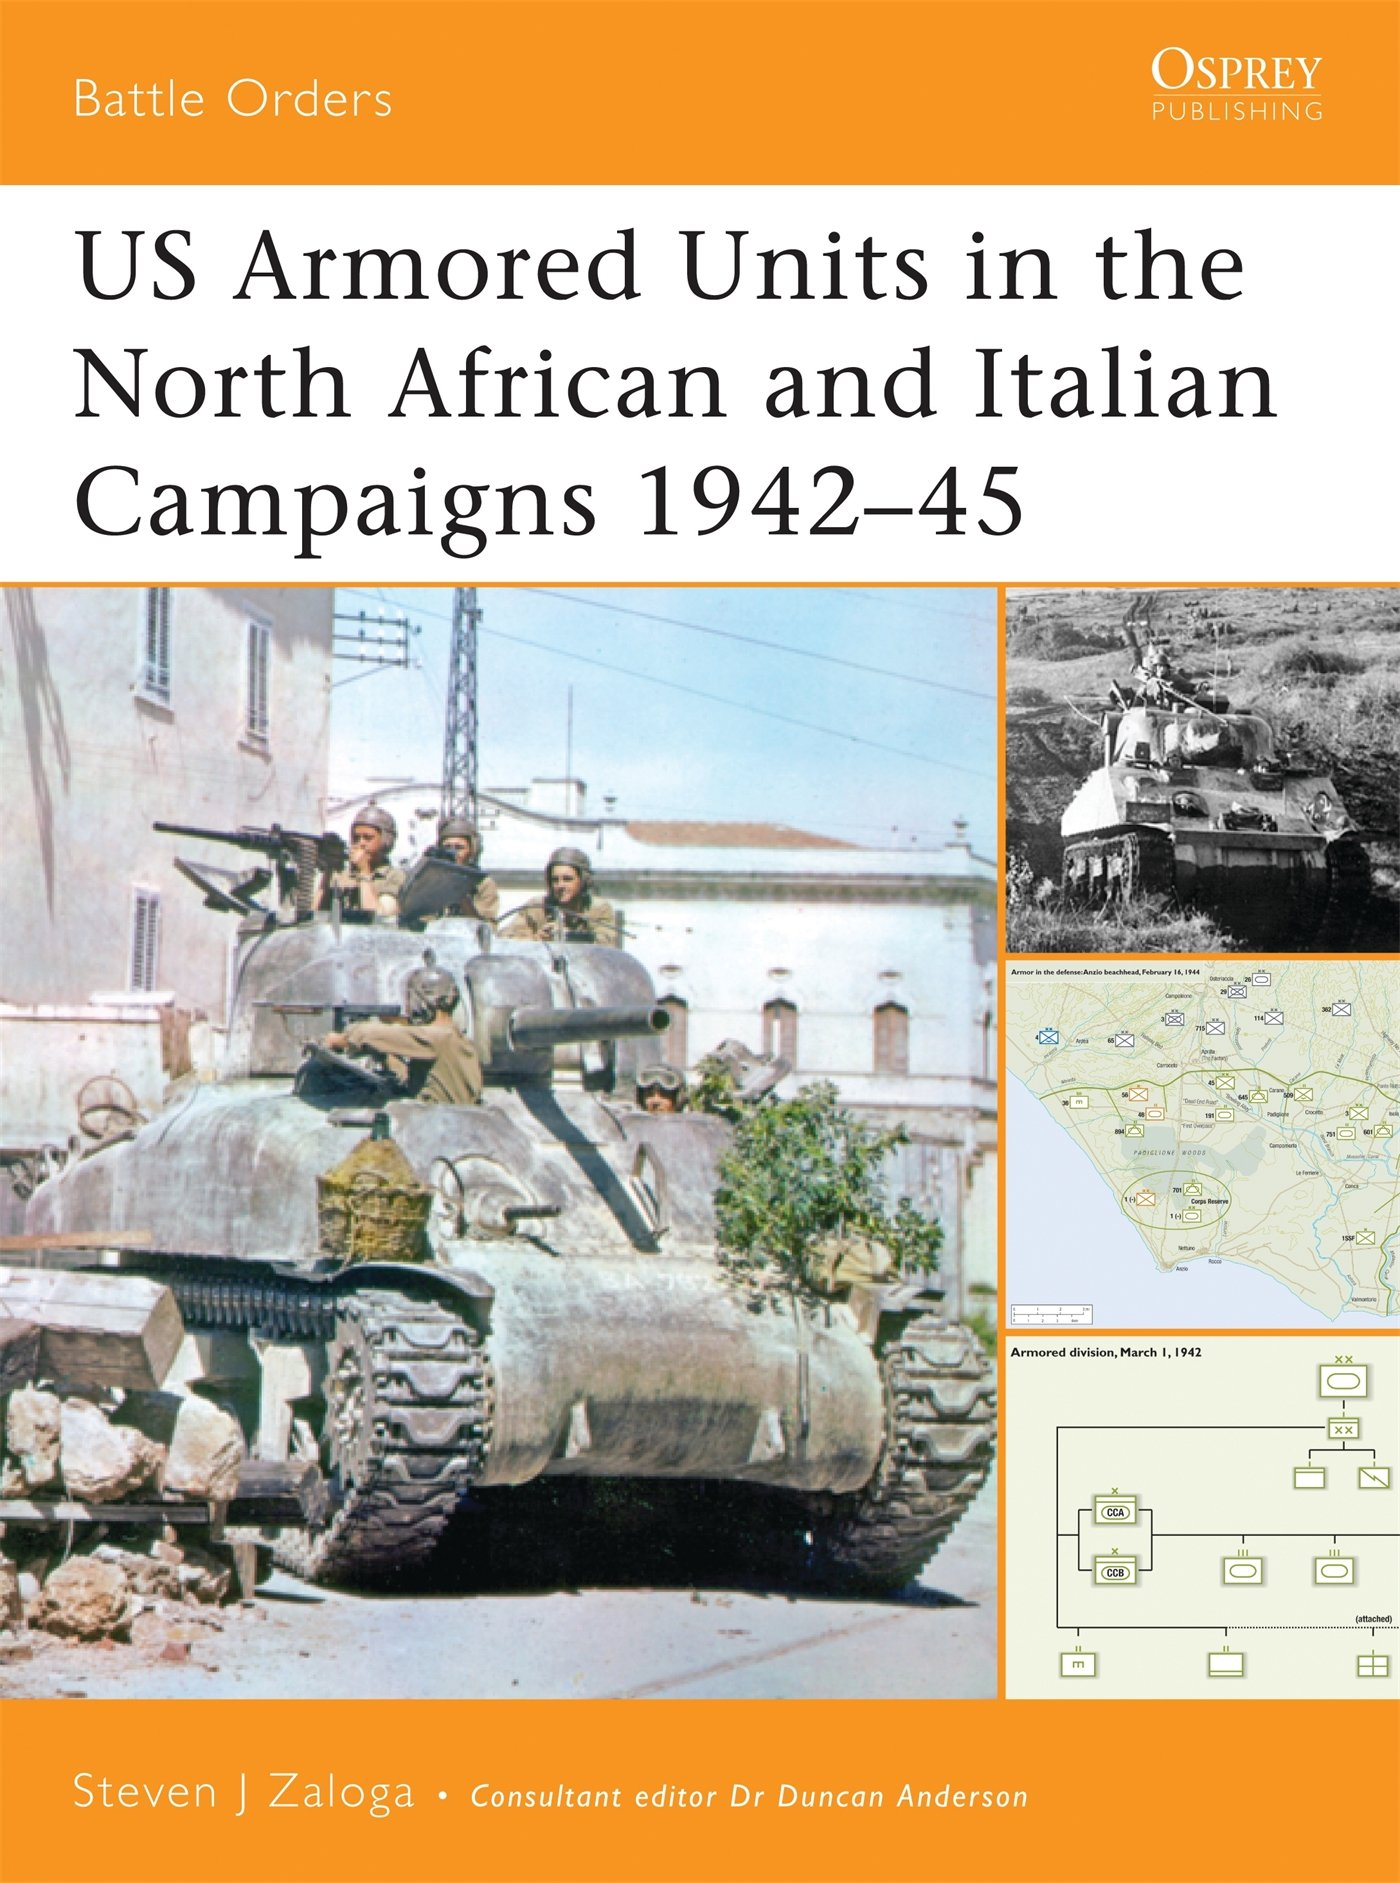 US Armored Divisions: The European Theater of Operations, 1944-45